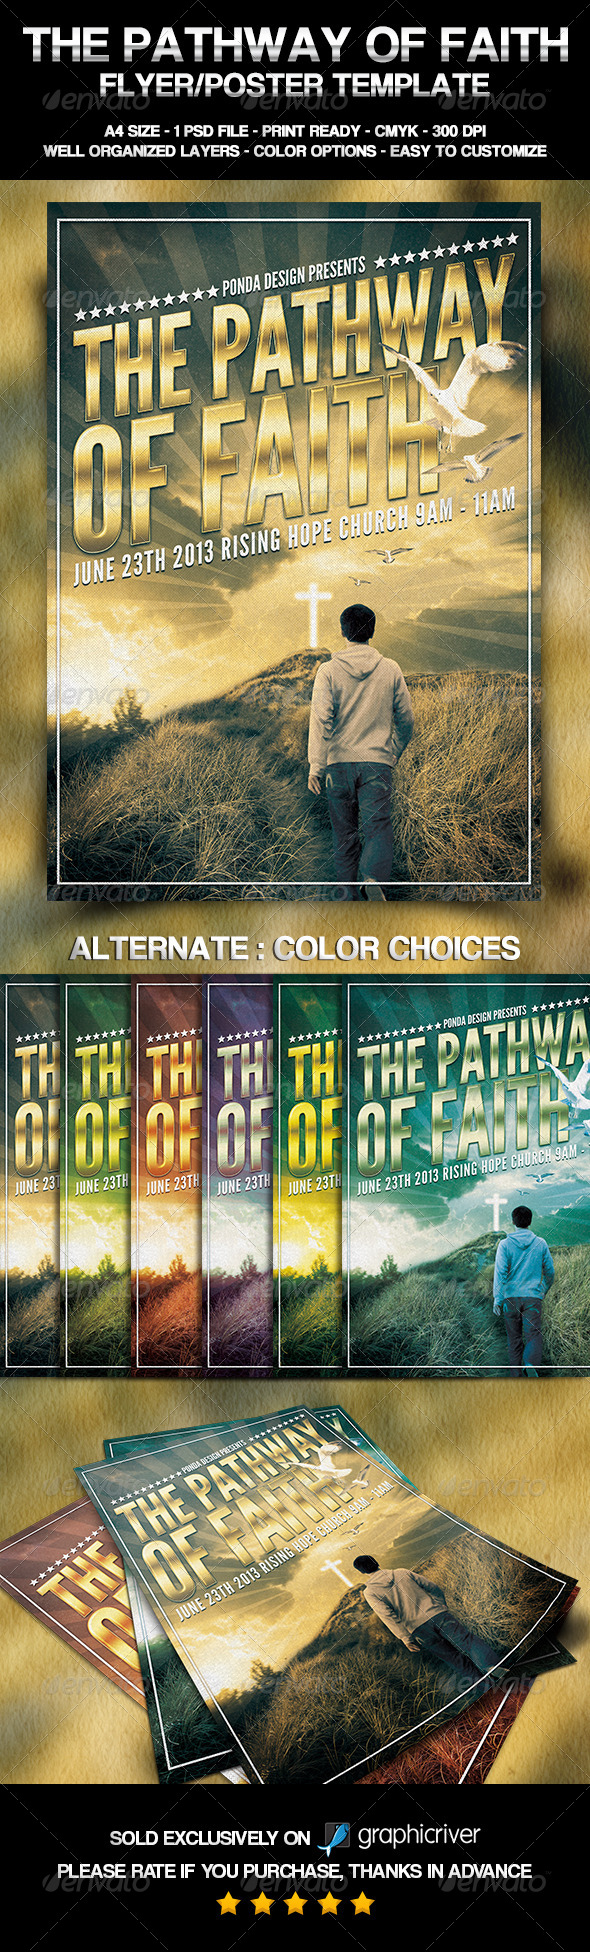 The Pathway of Faith Flyer/Poster Template - Church Flyers